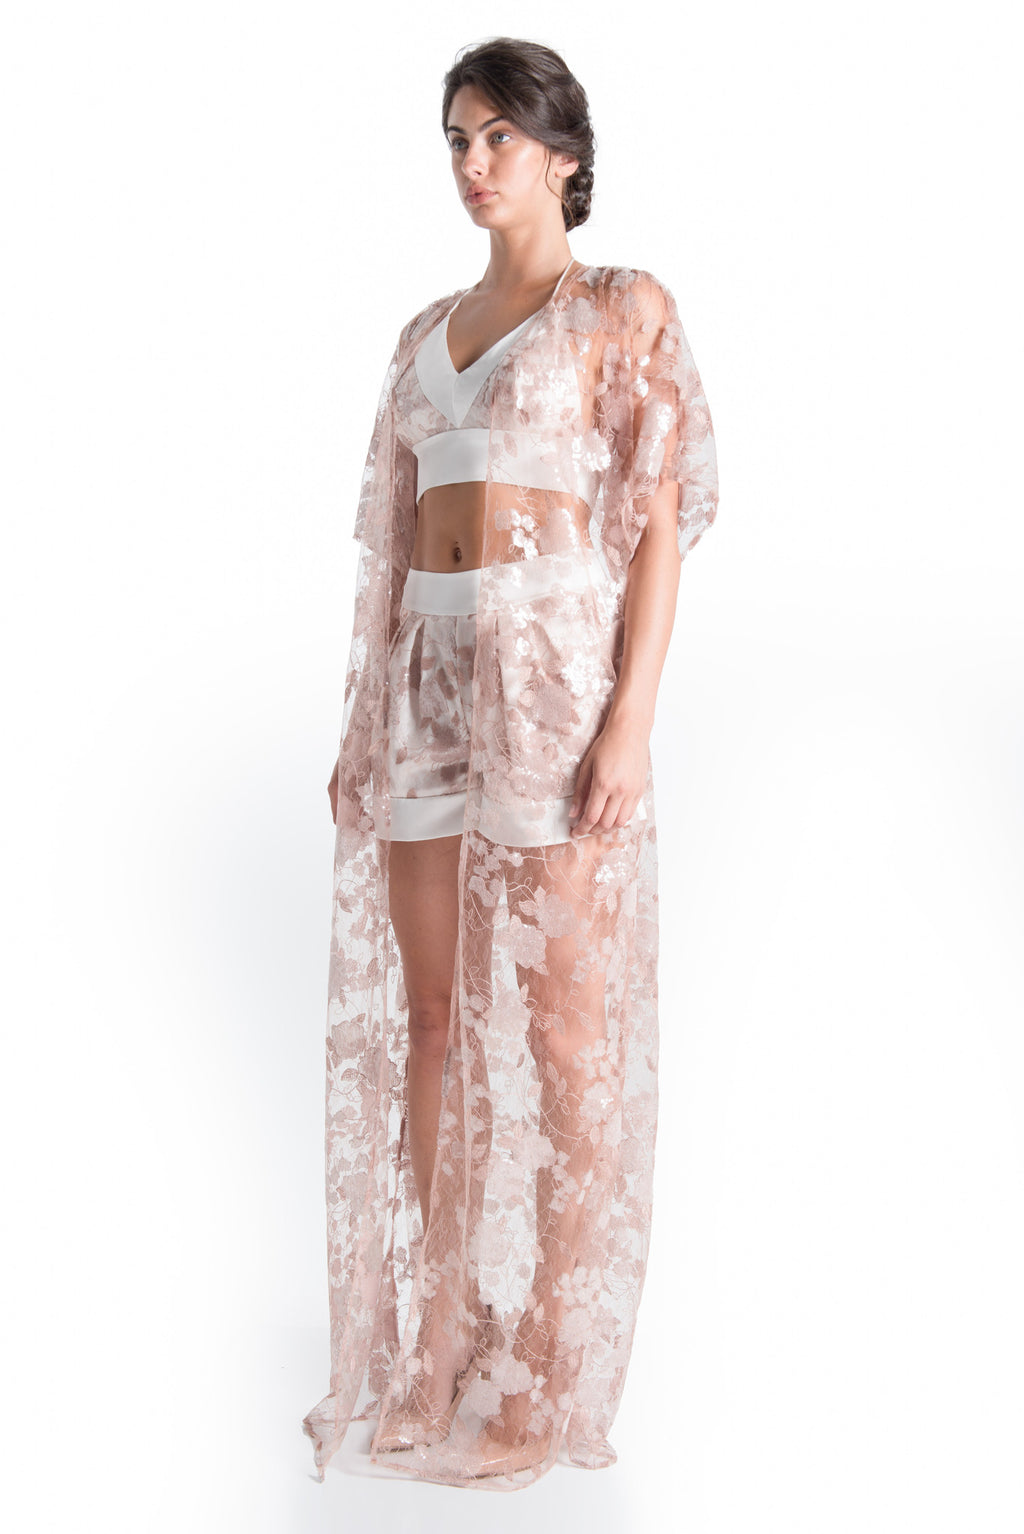 VENETIAN Lace Kimono - ROMANTIC DUSTY | SAMPLE | HAUS OF SONG